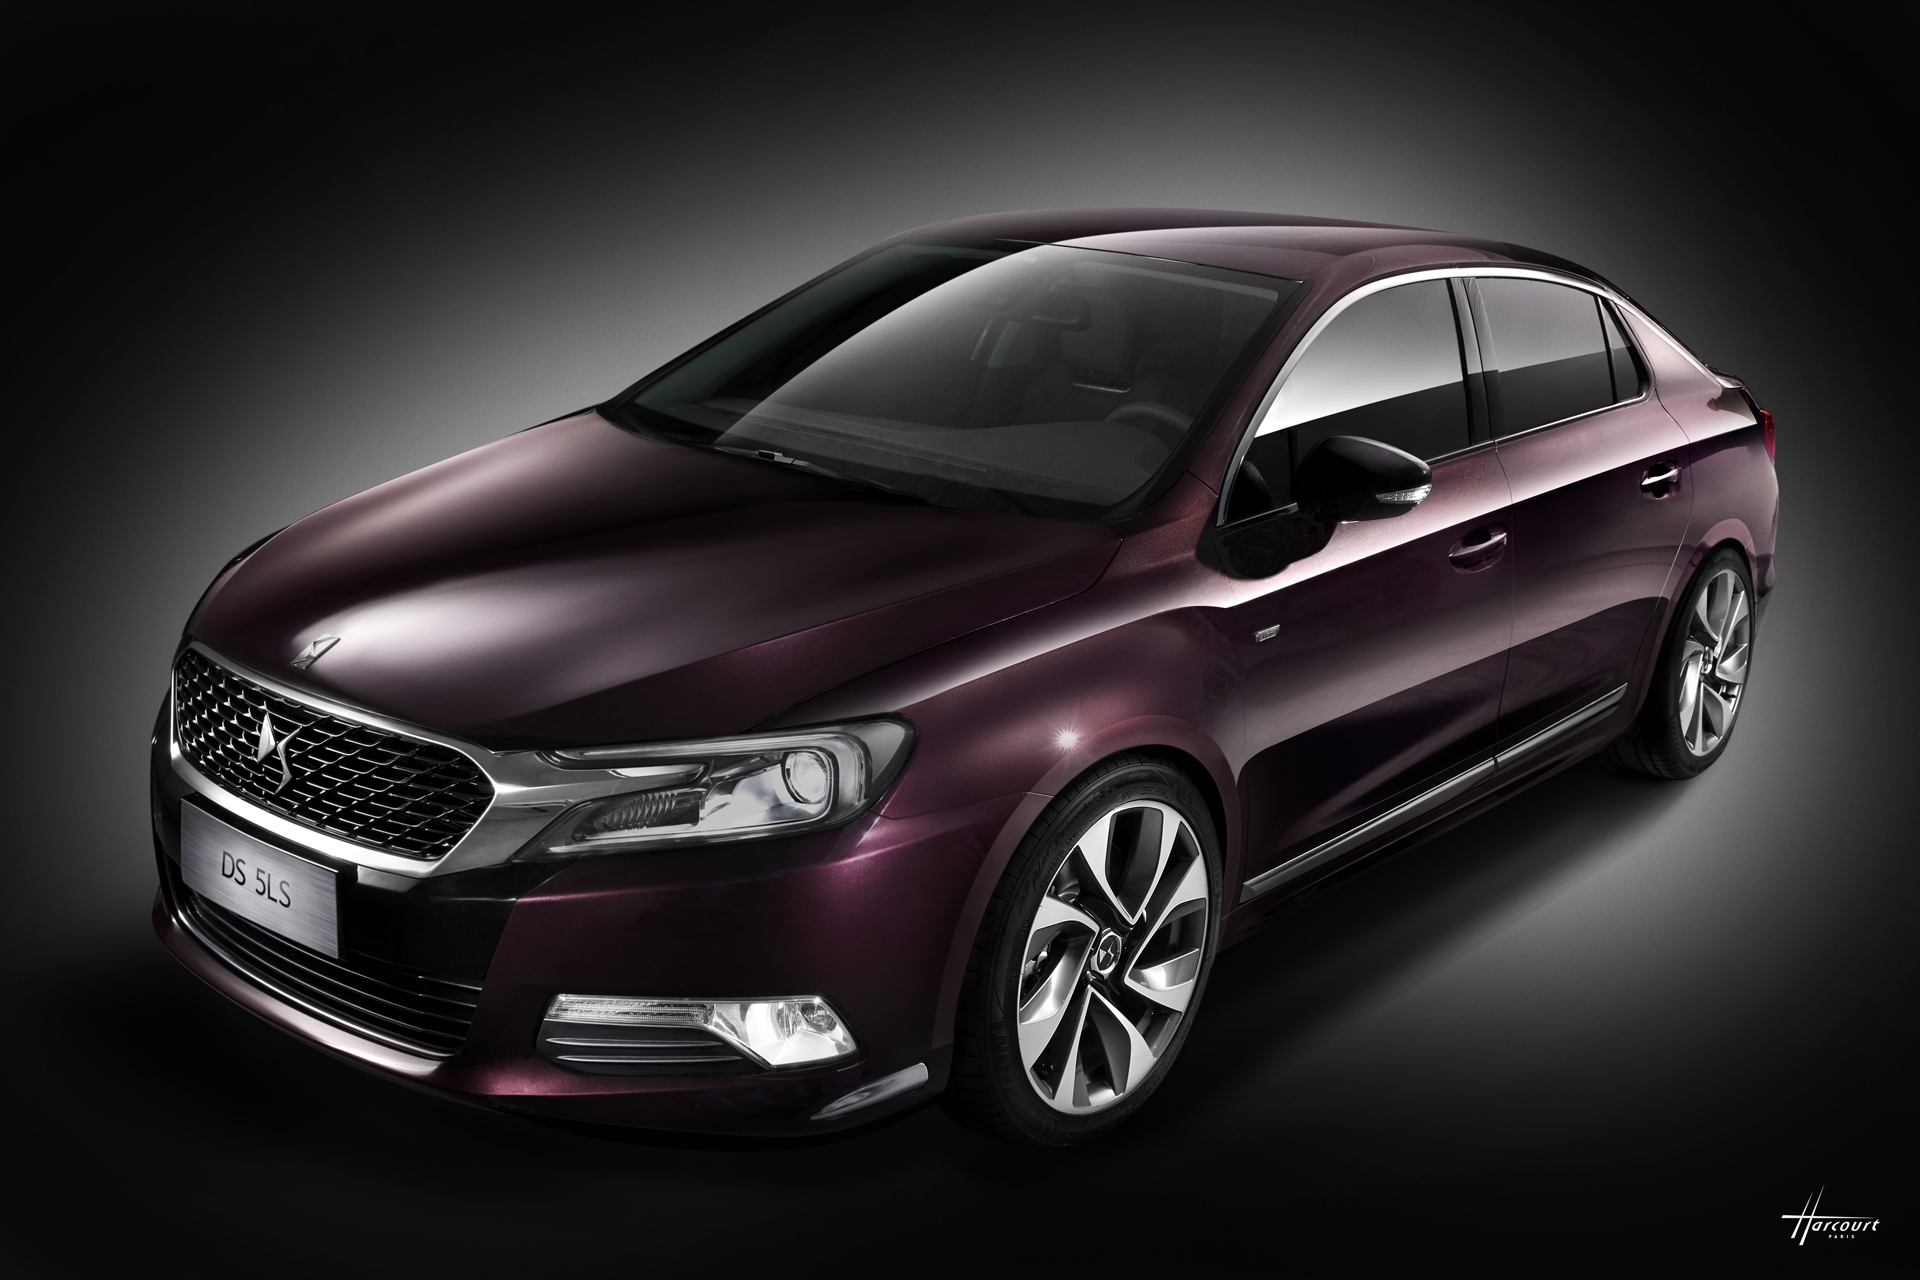 1213_citroen_ds5ls_4